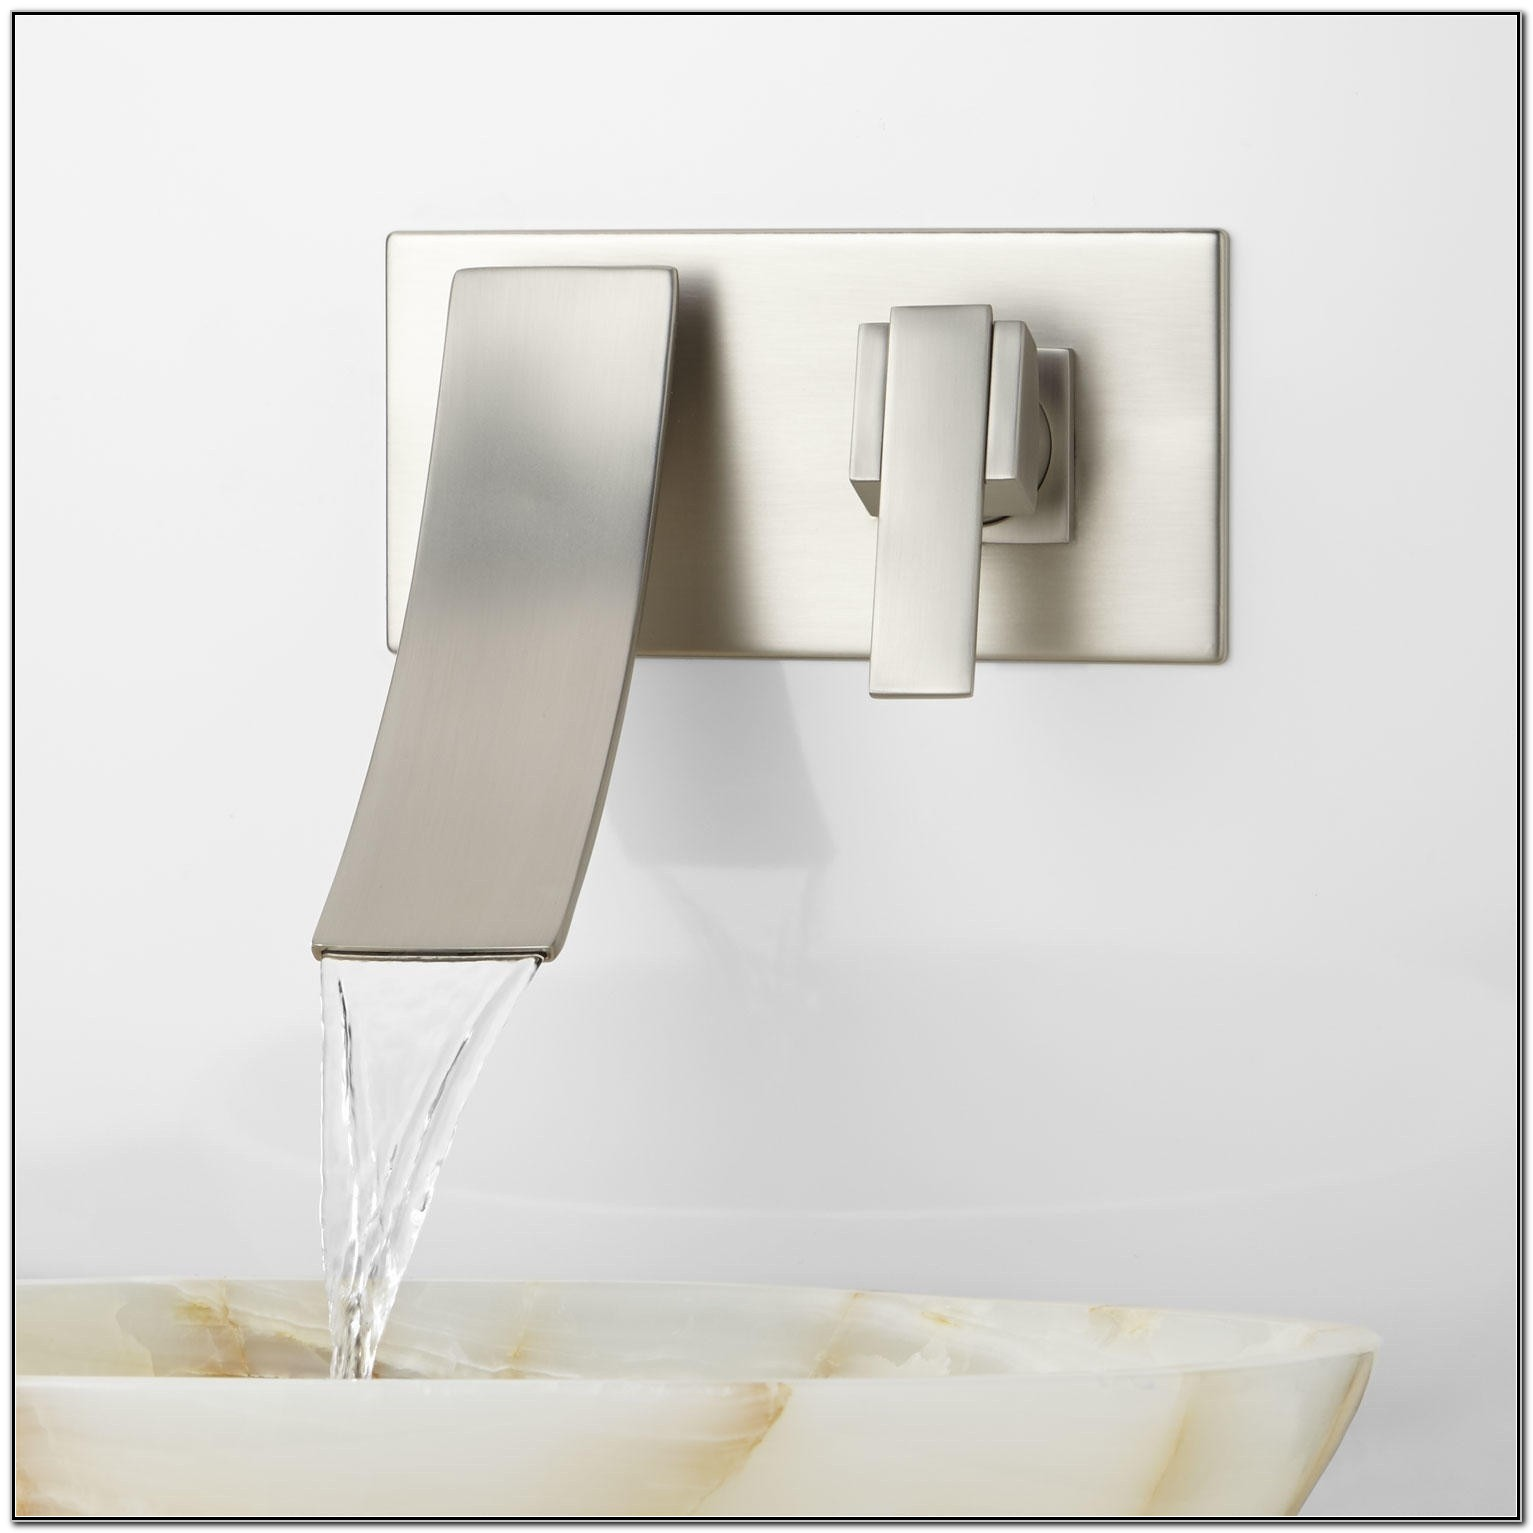 Wall Mounted Waterfall Faucets For Bathroom Sinks